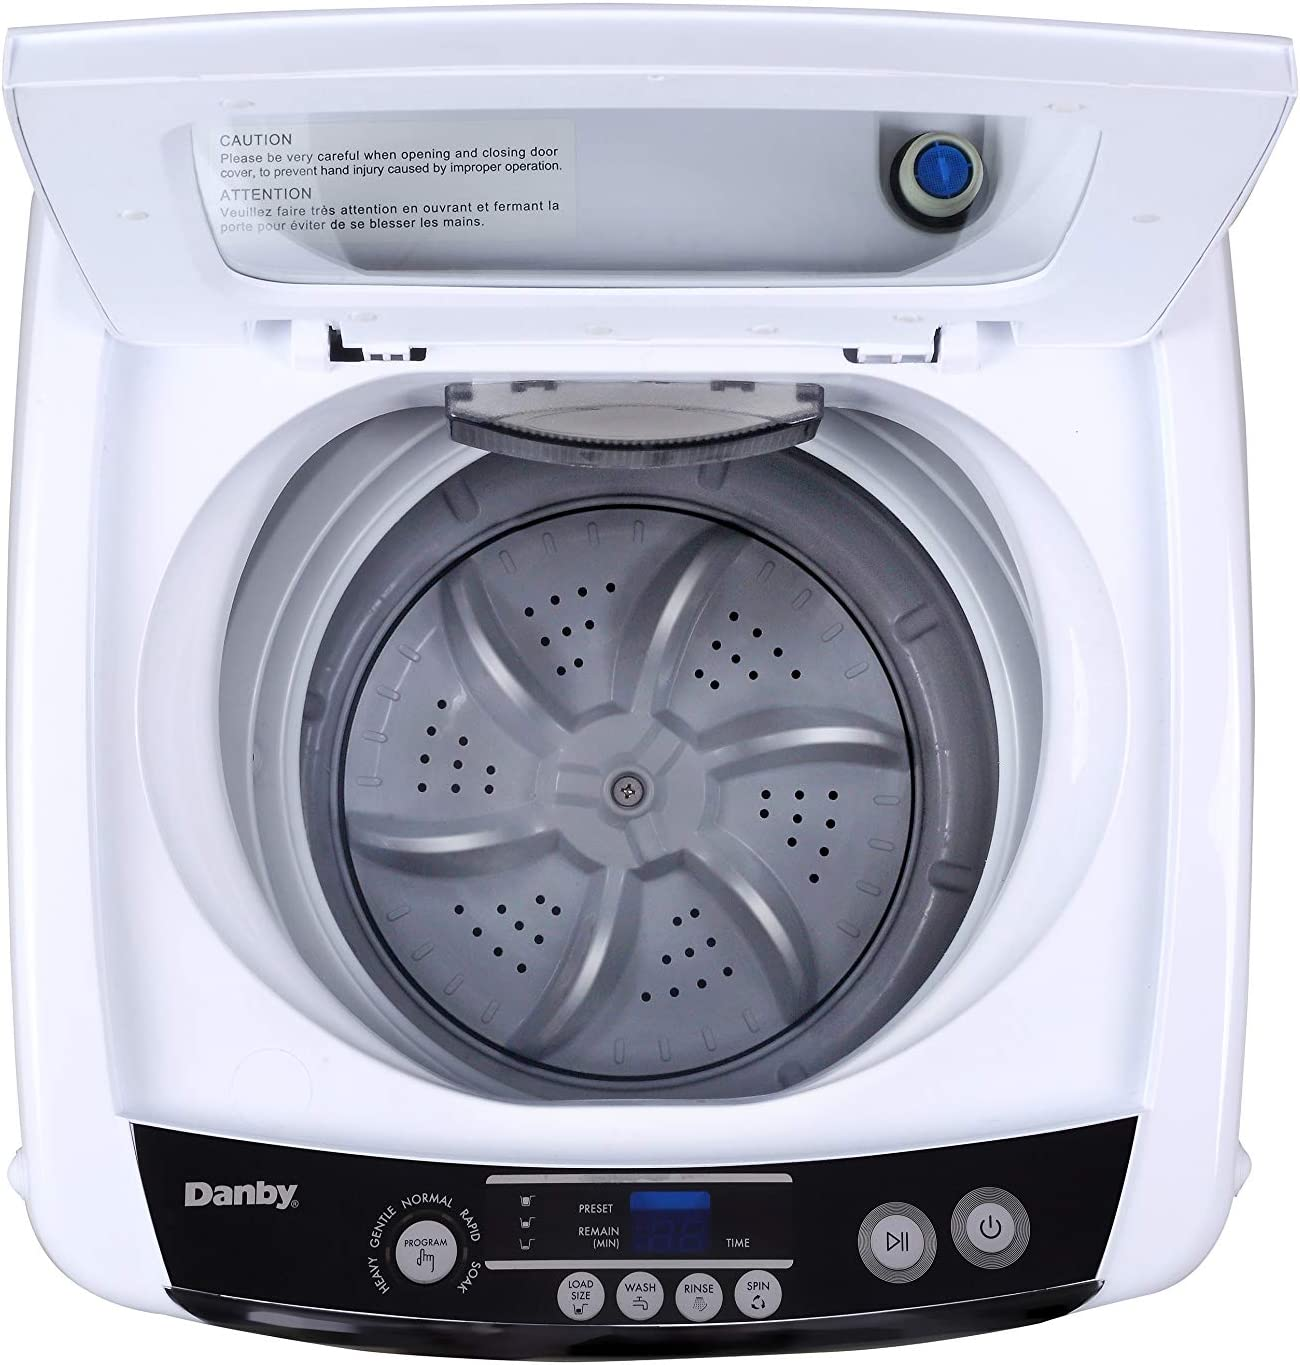 Small Spaces Washing Machine in White-Compact Top Load Washer for Apartments Danby DWM030WDB-6 0.9 Cu.Ft